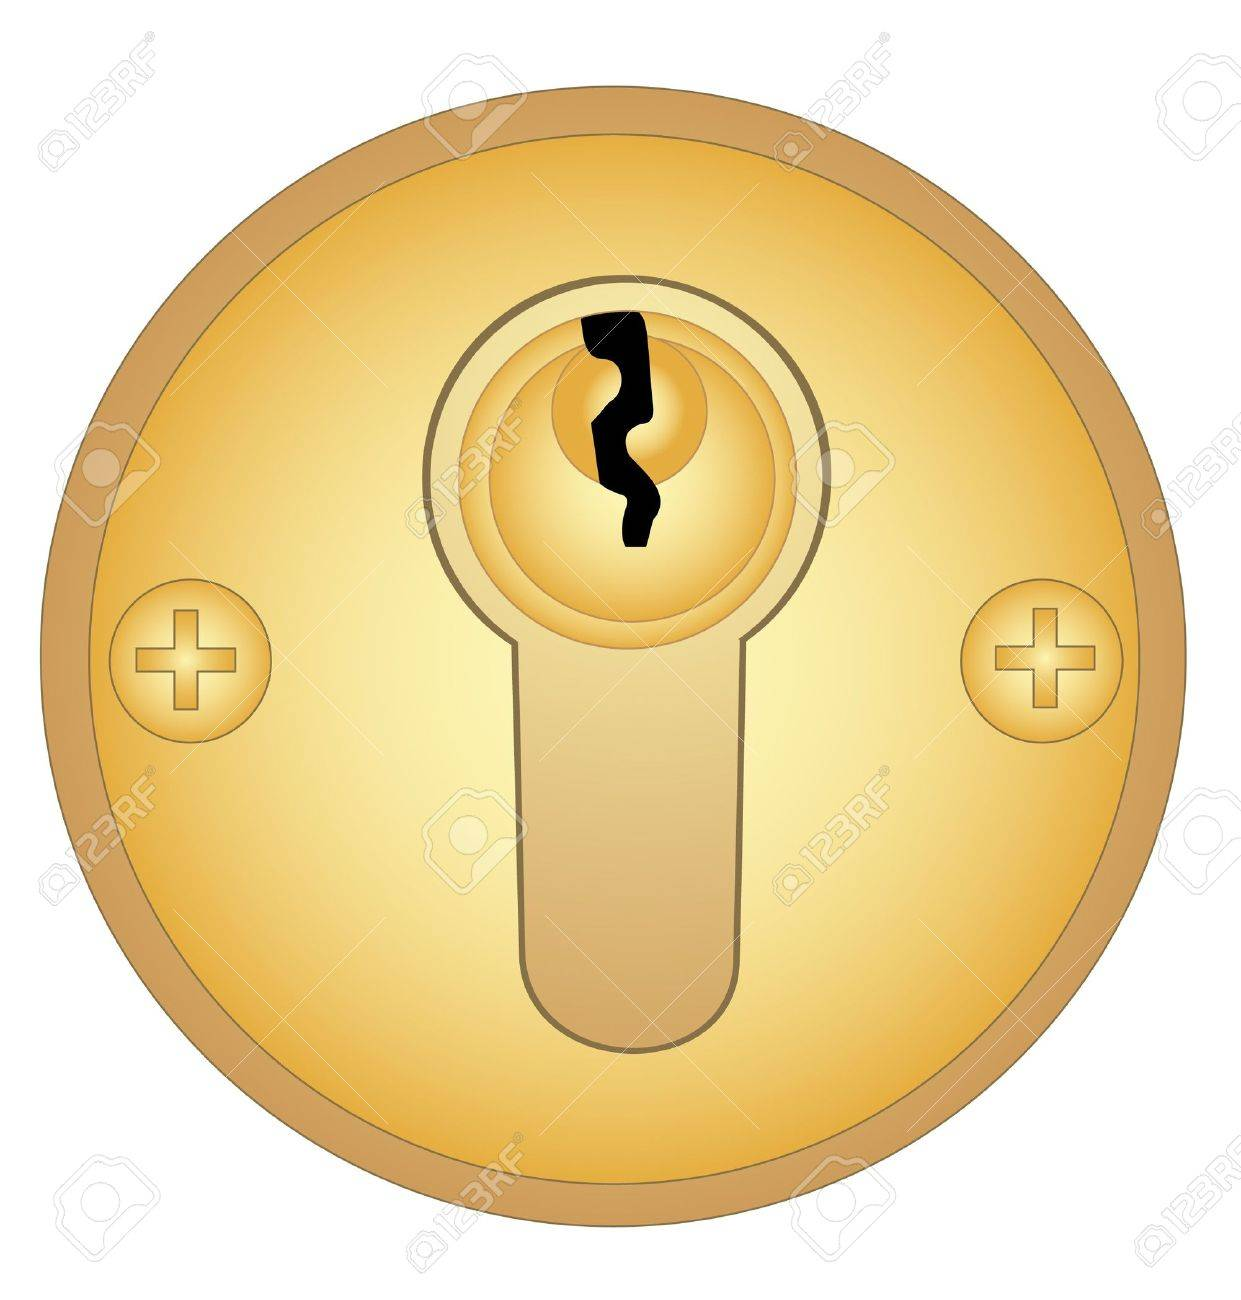 Illustration of a gold keyhole on a white background Stock Vector - 10011463